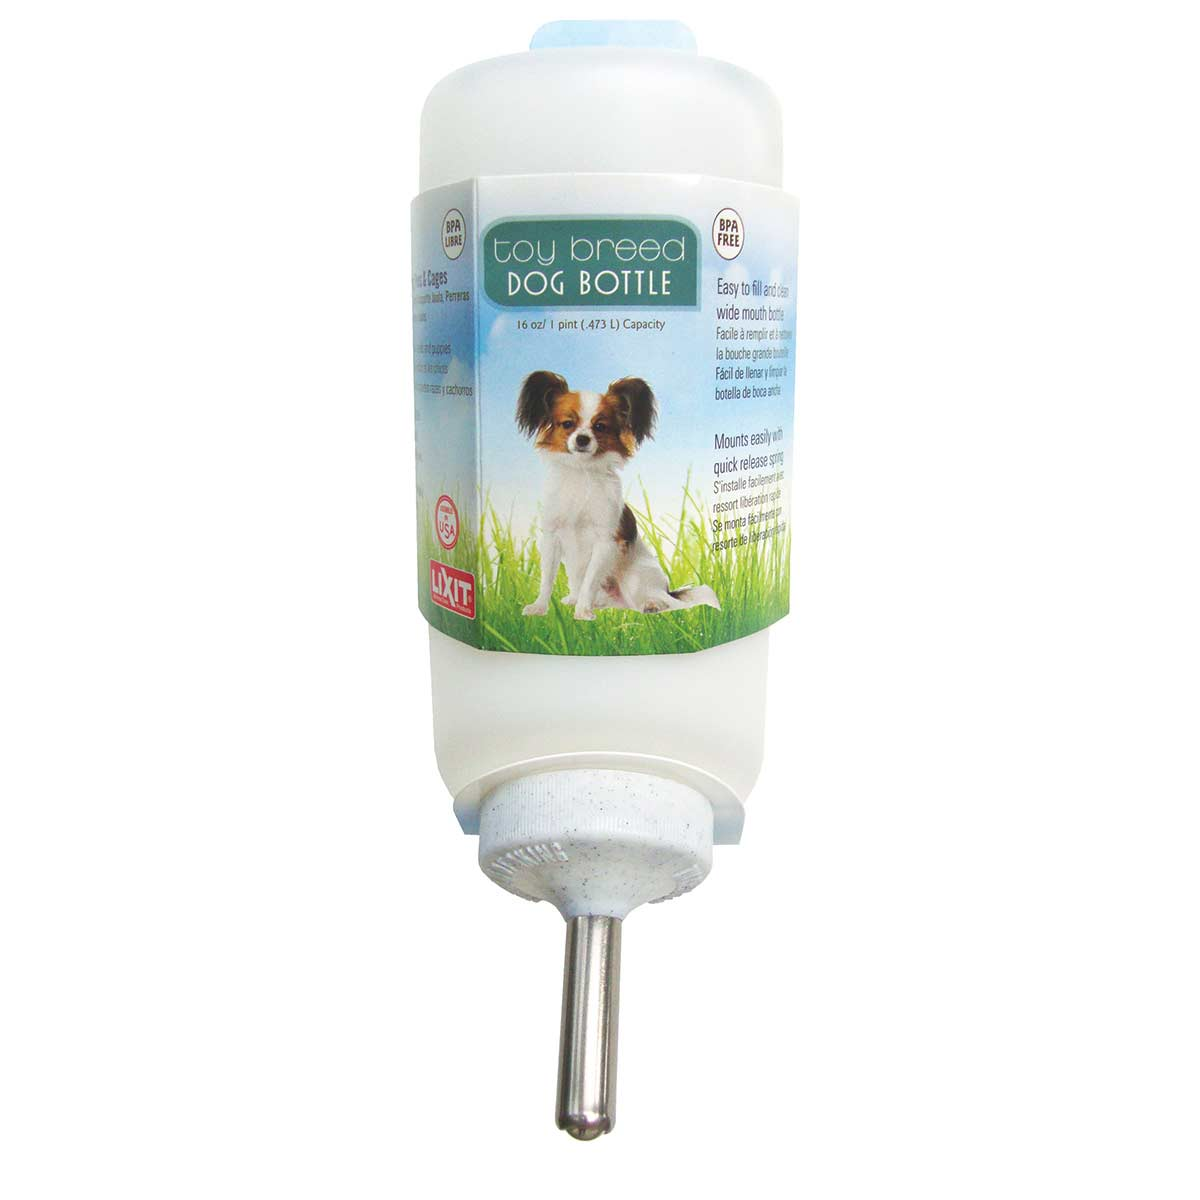 Lixit 16 oz Small Dog Bottle for Kennel